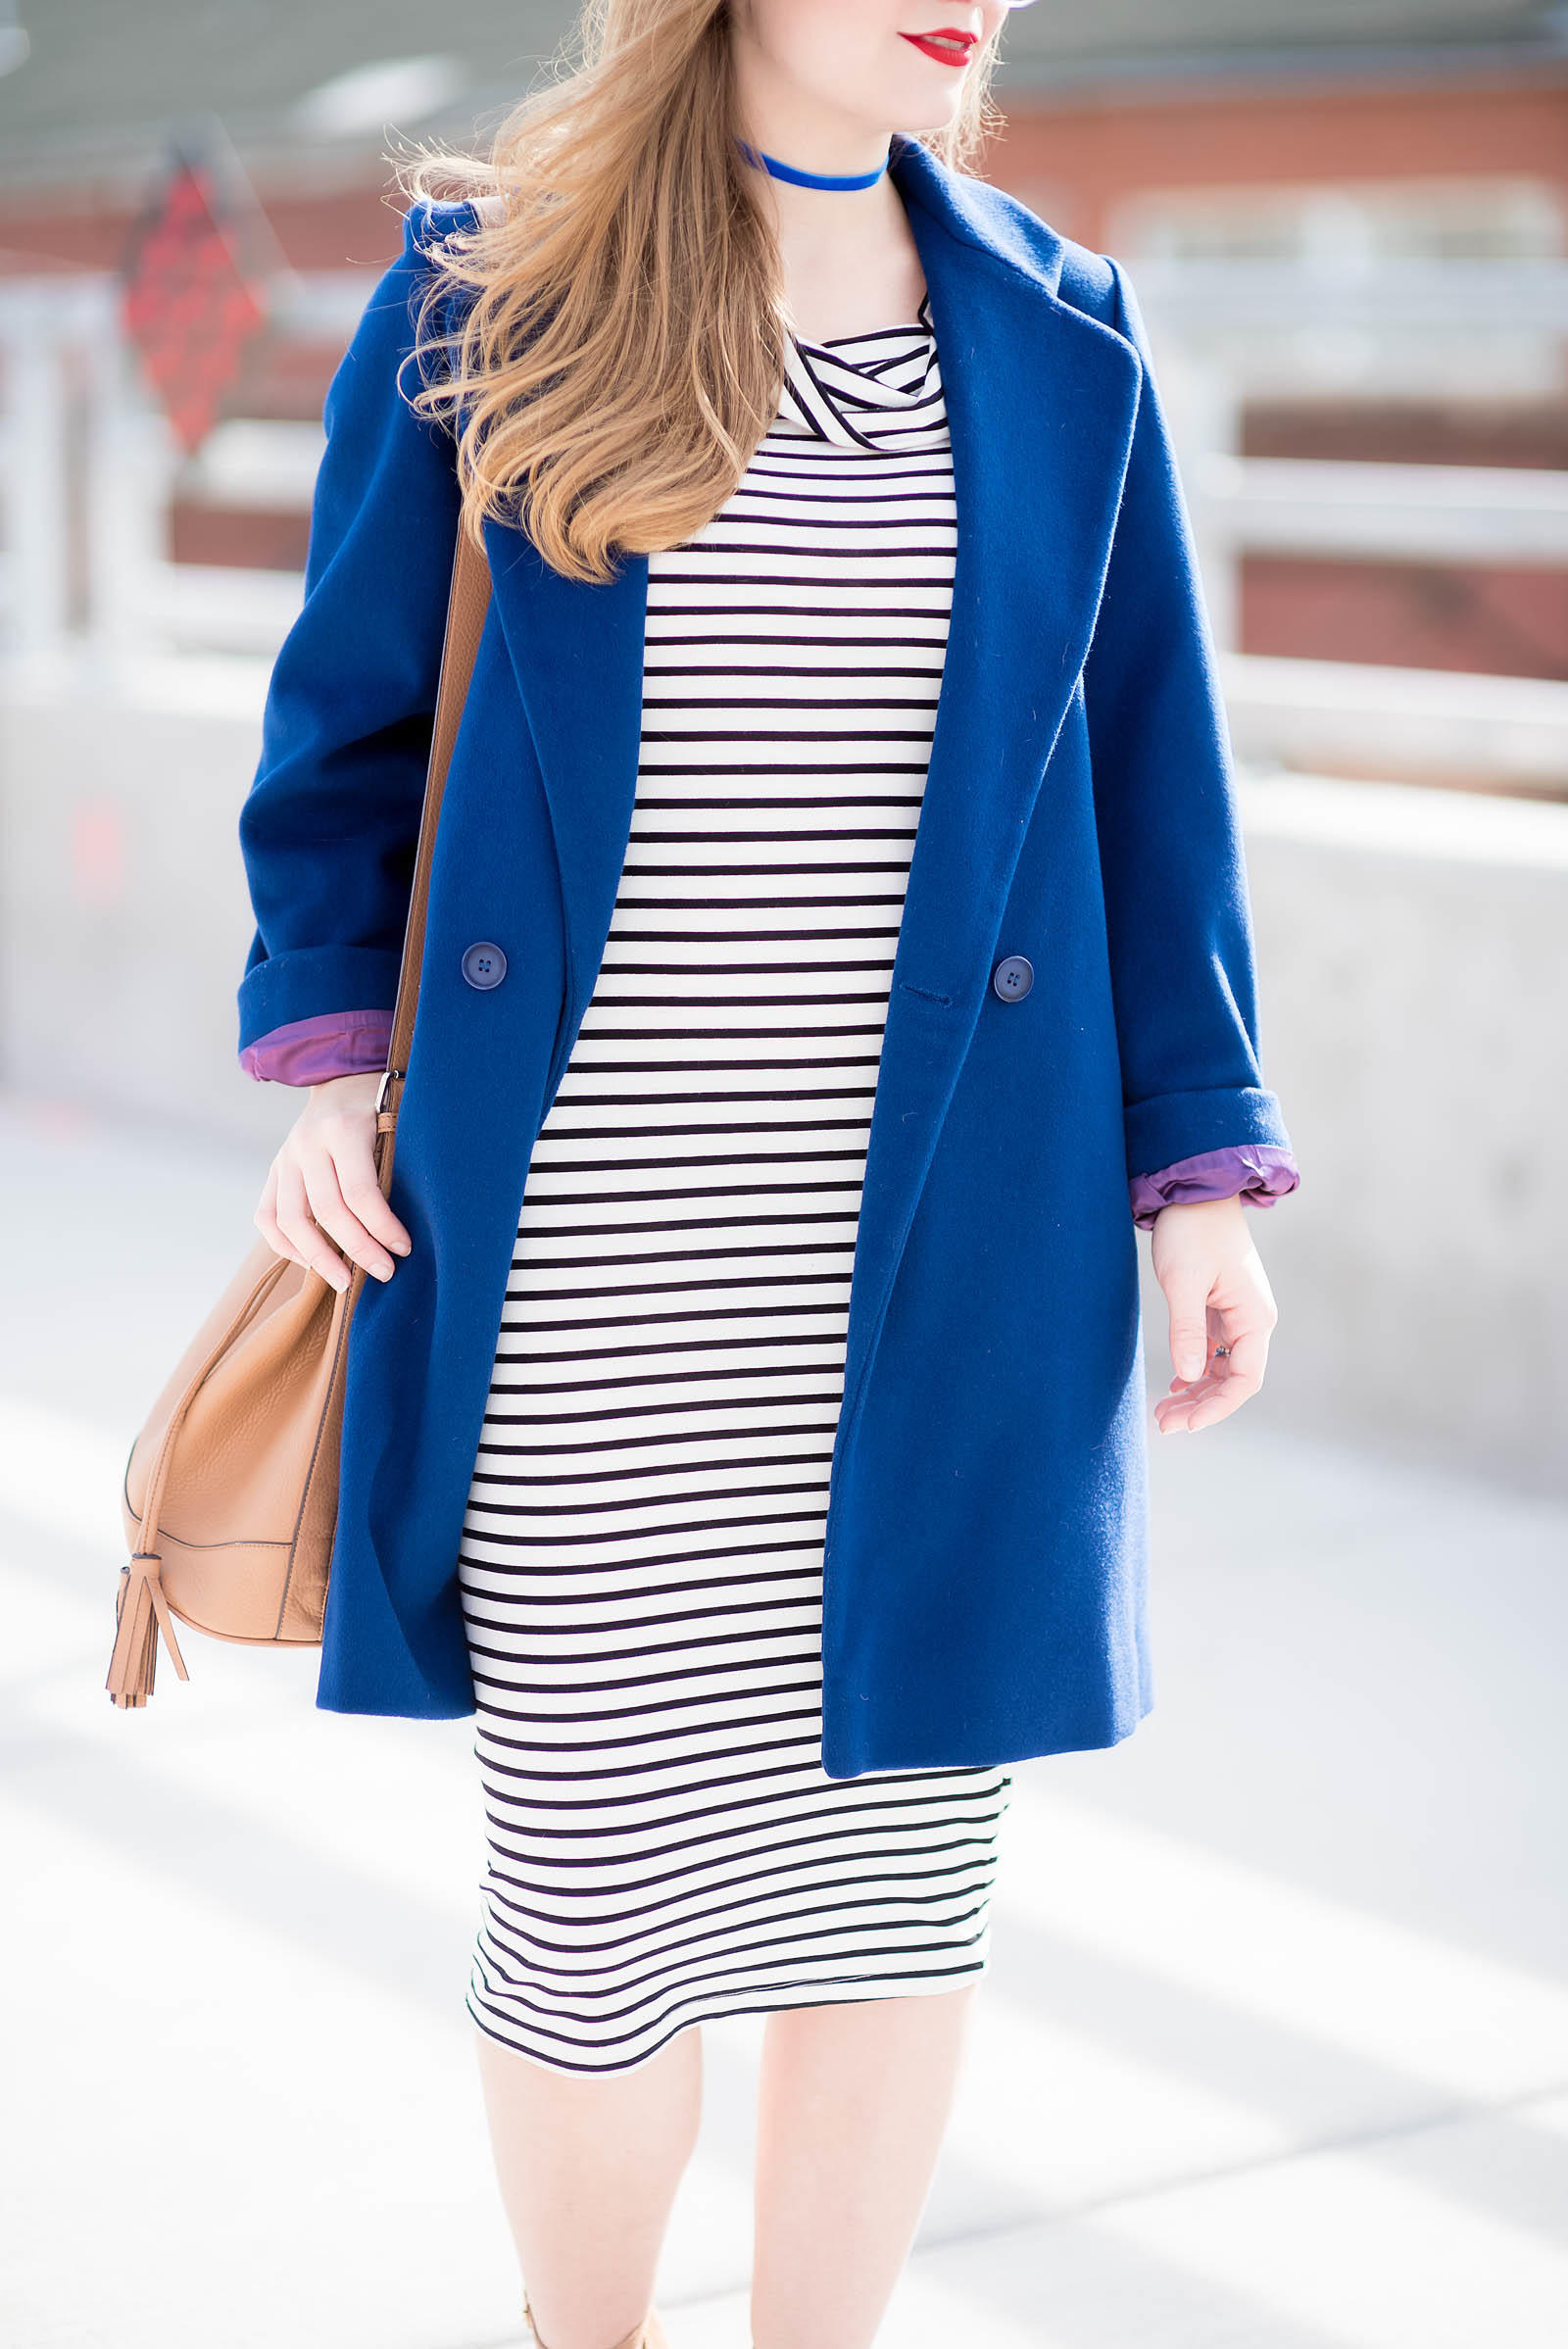 Cobalt Coat Striped Dress Steve Madden